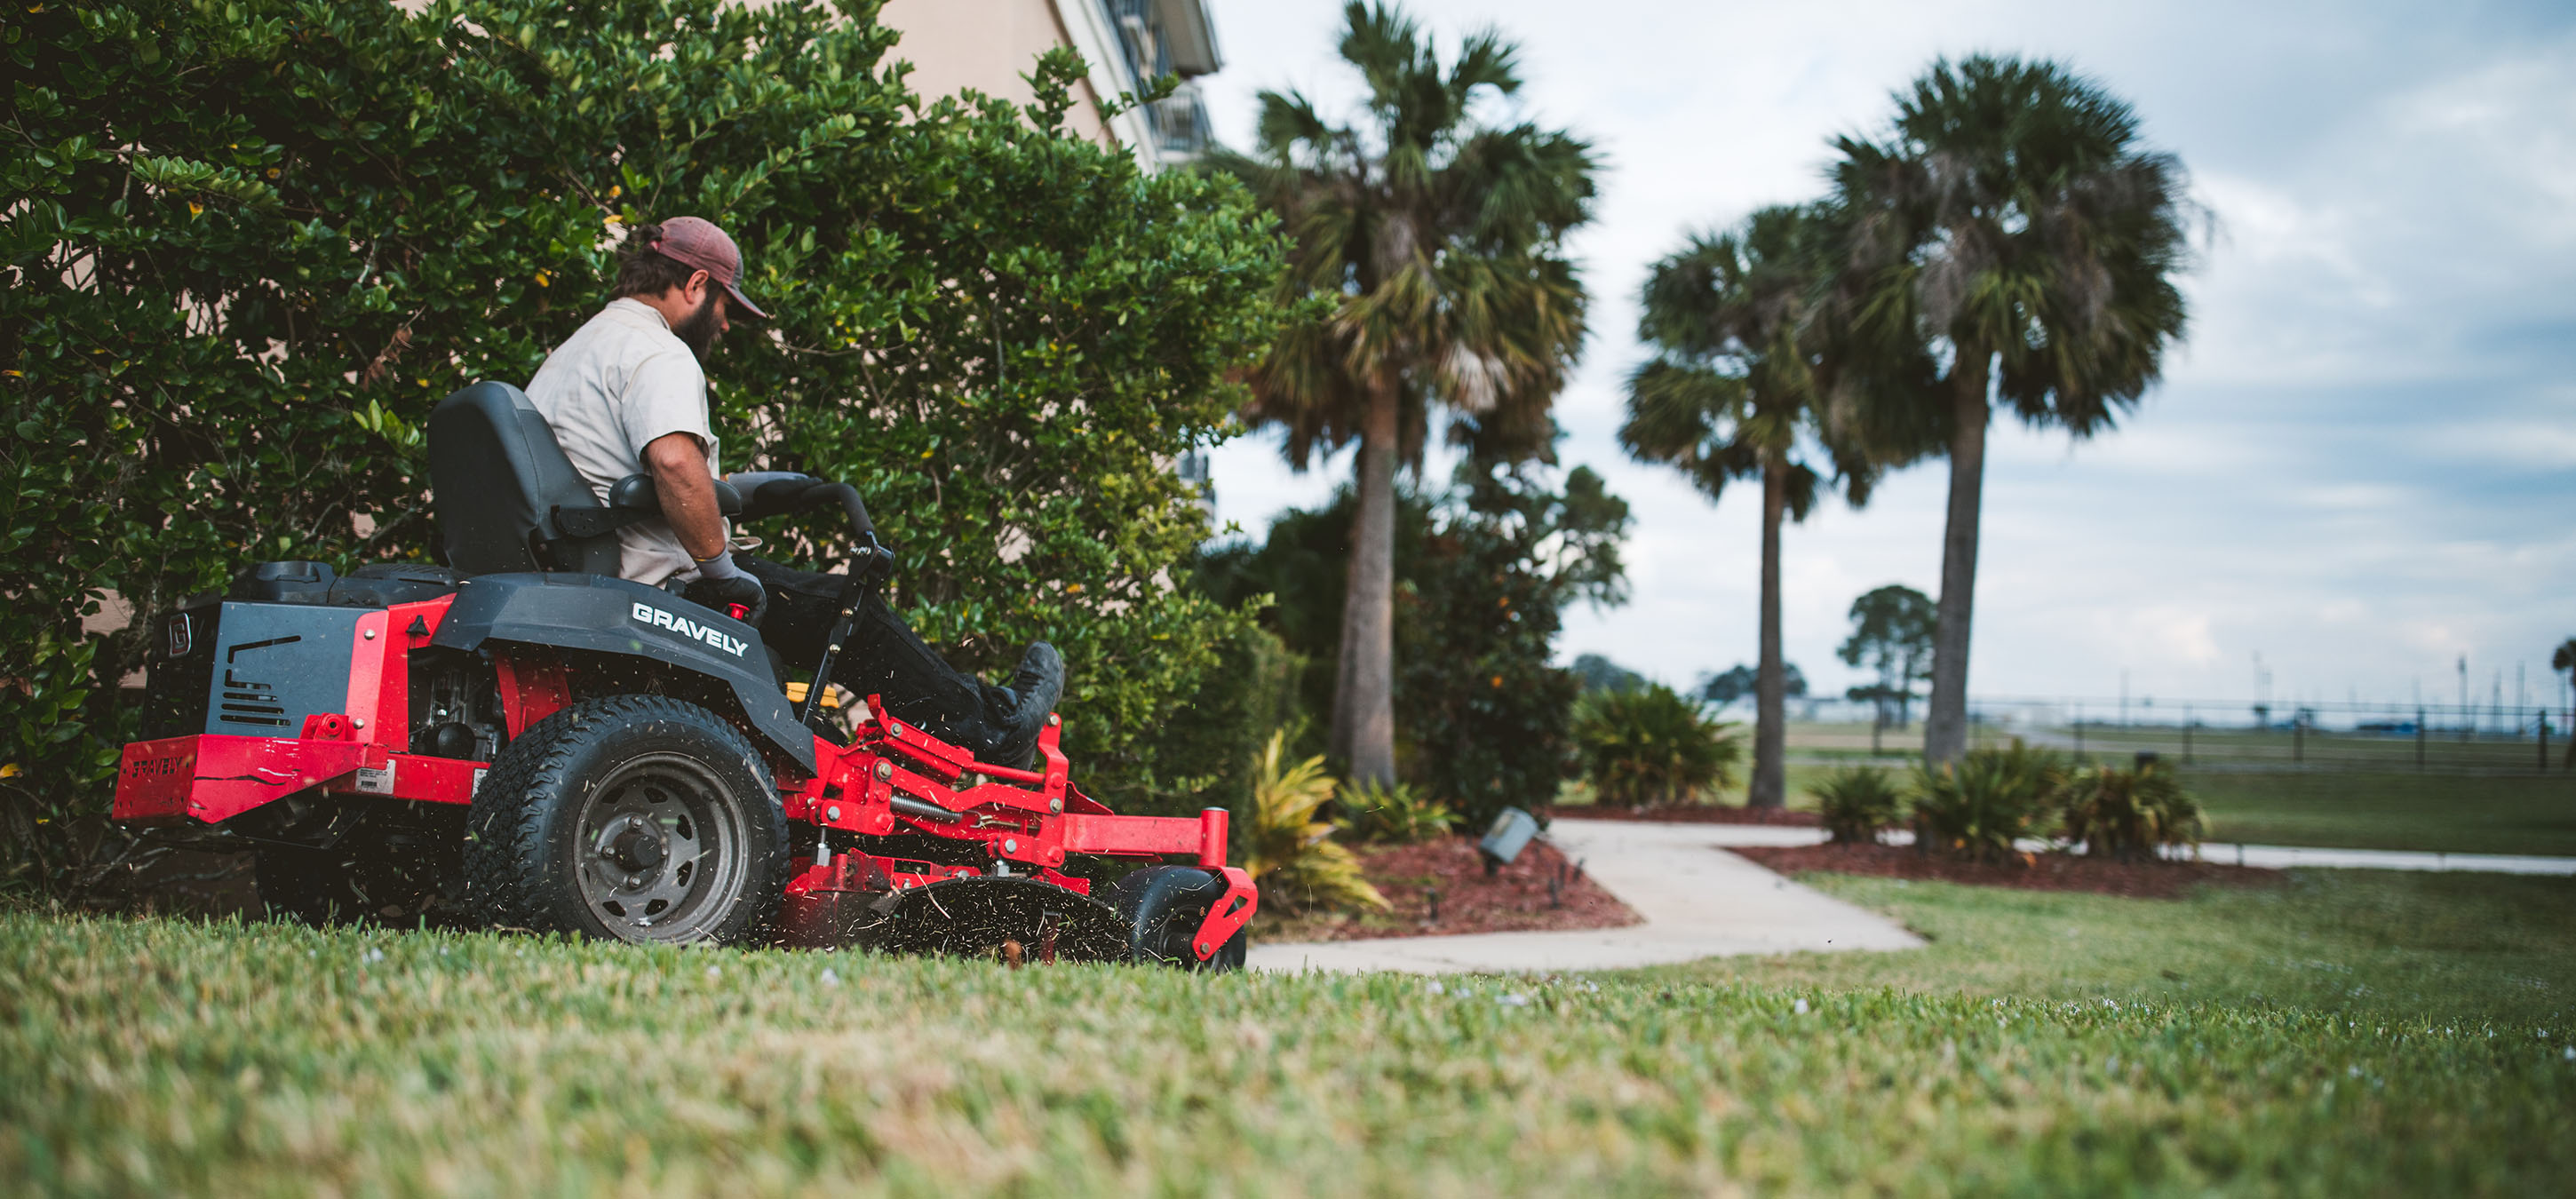 New Residential Lawn Mowers and Commercial Lawn Mowers Hope